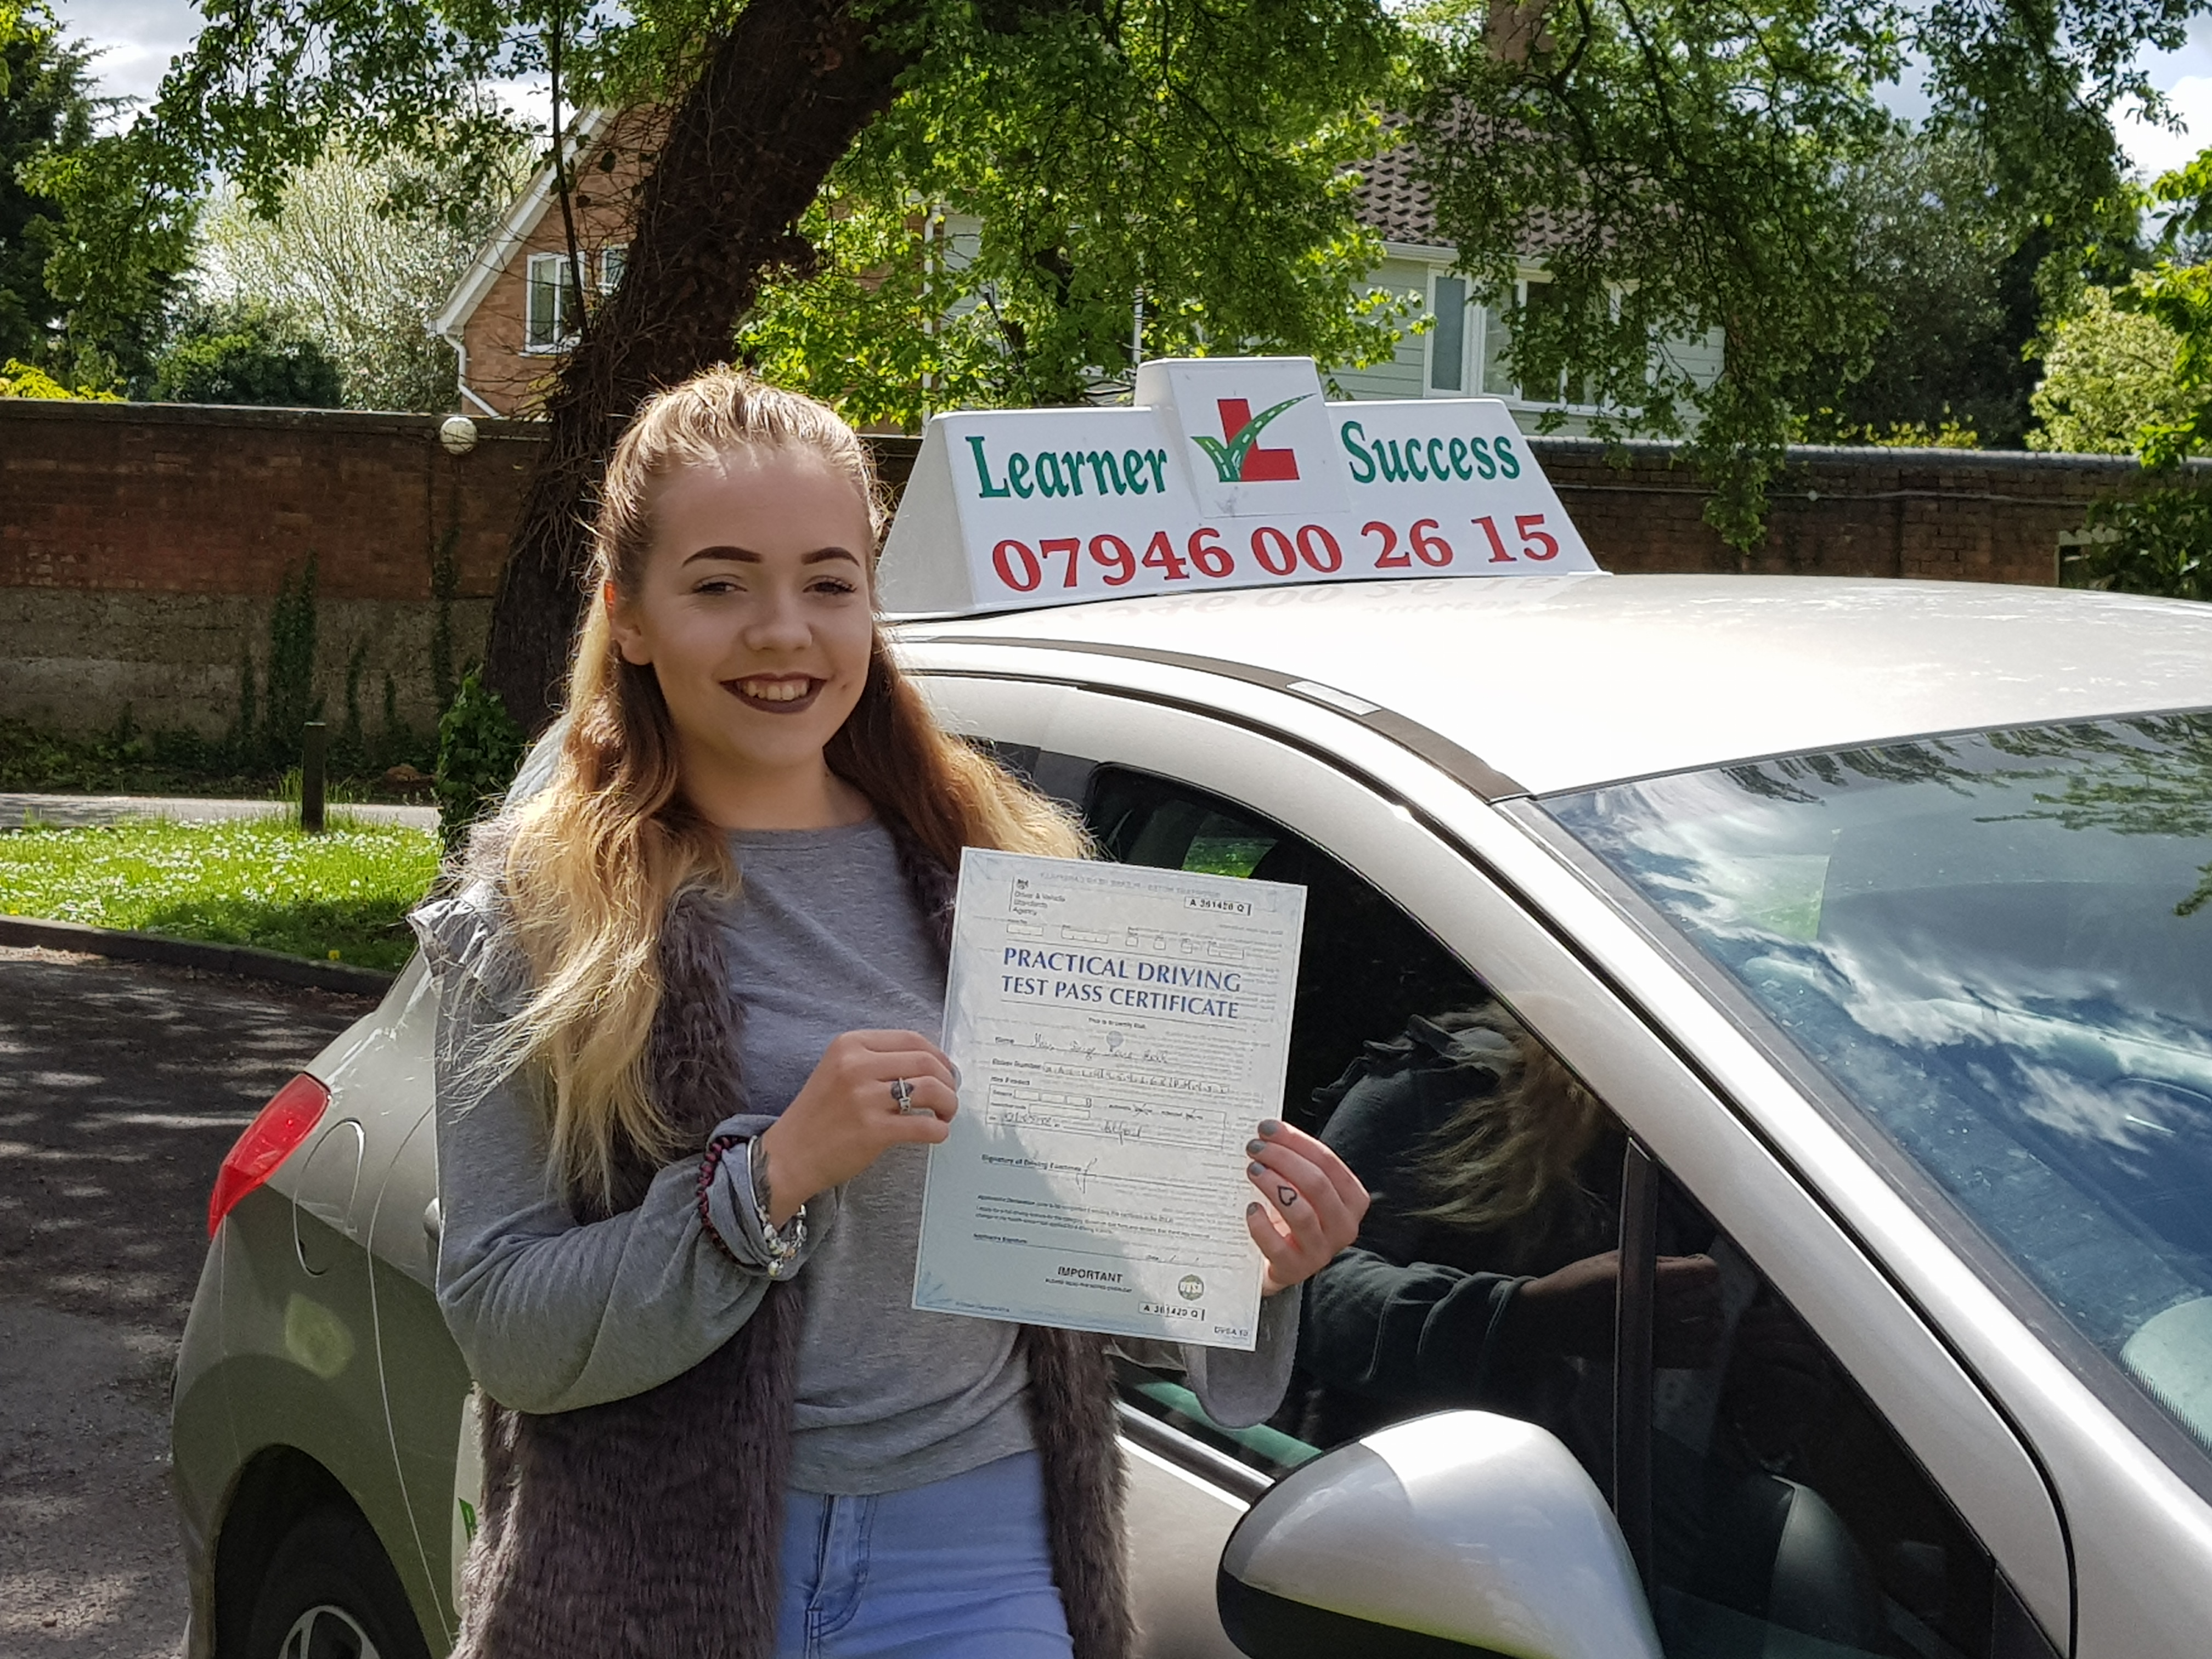 Paige passed in Ashford